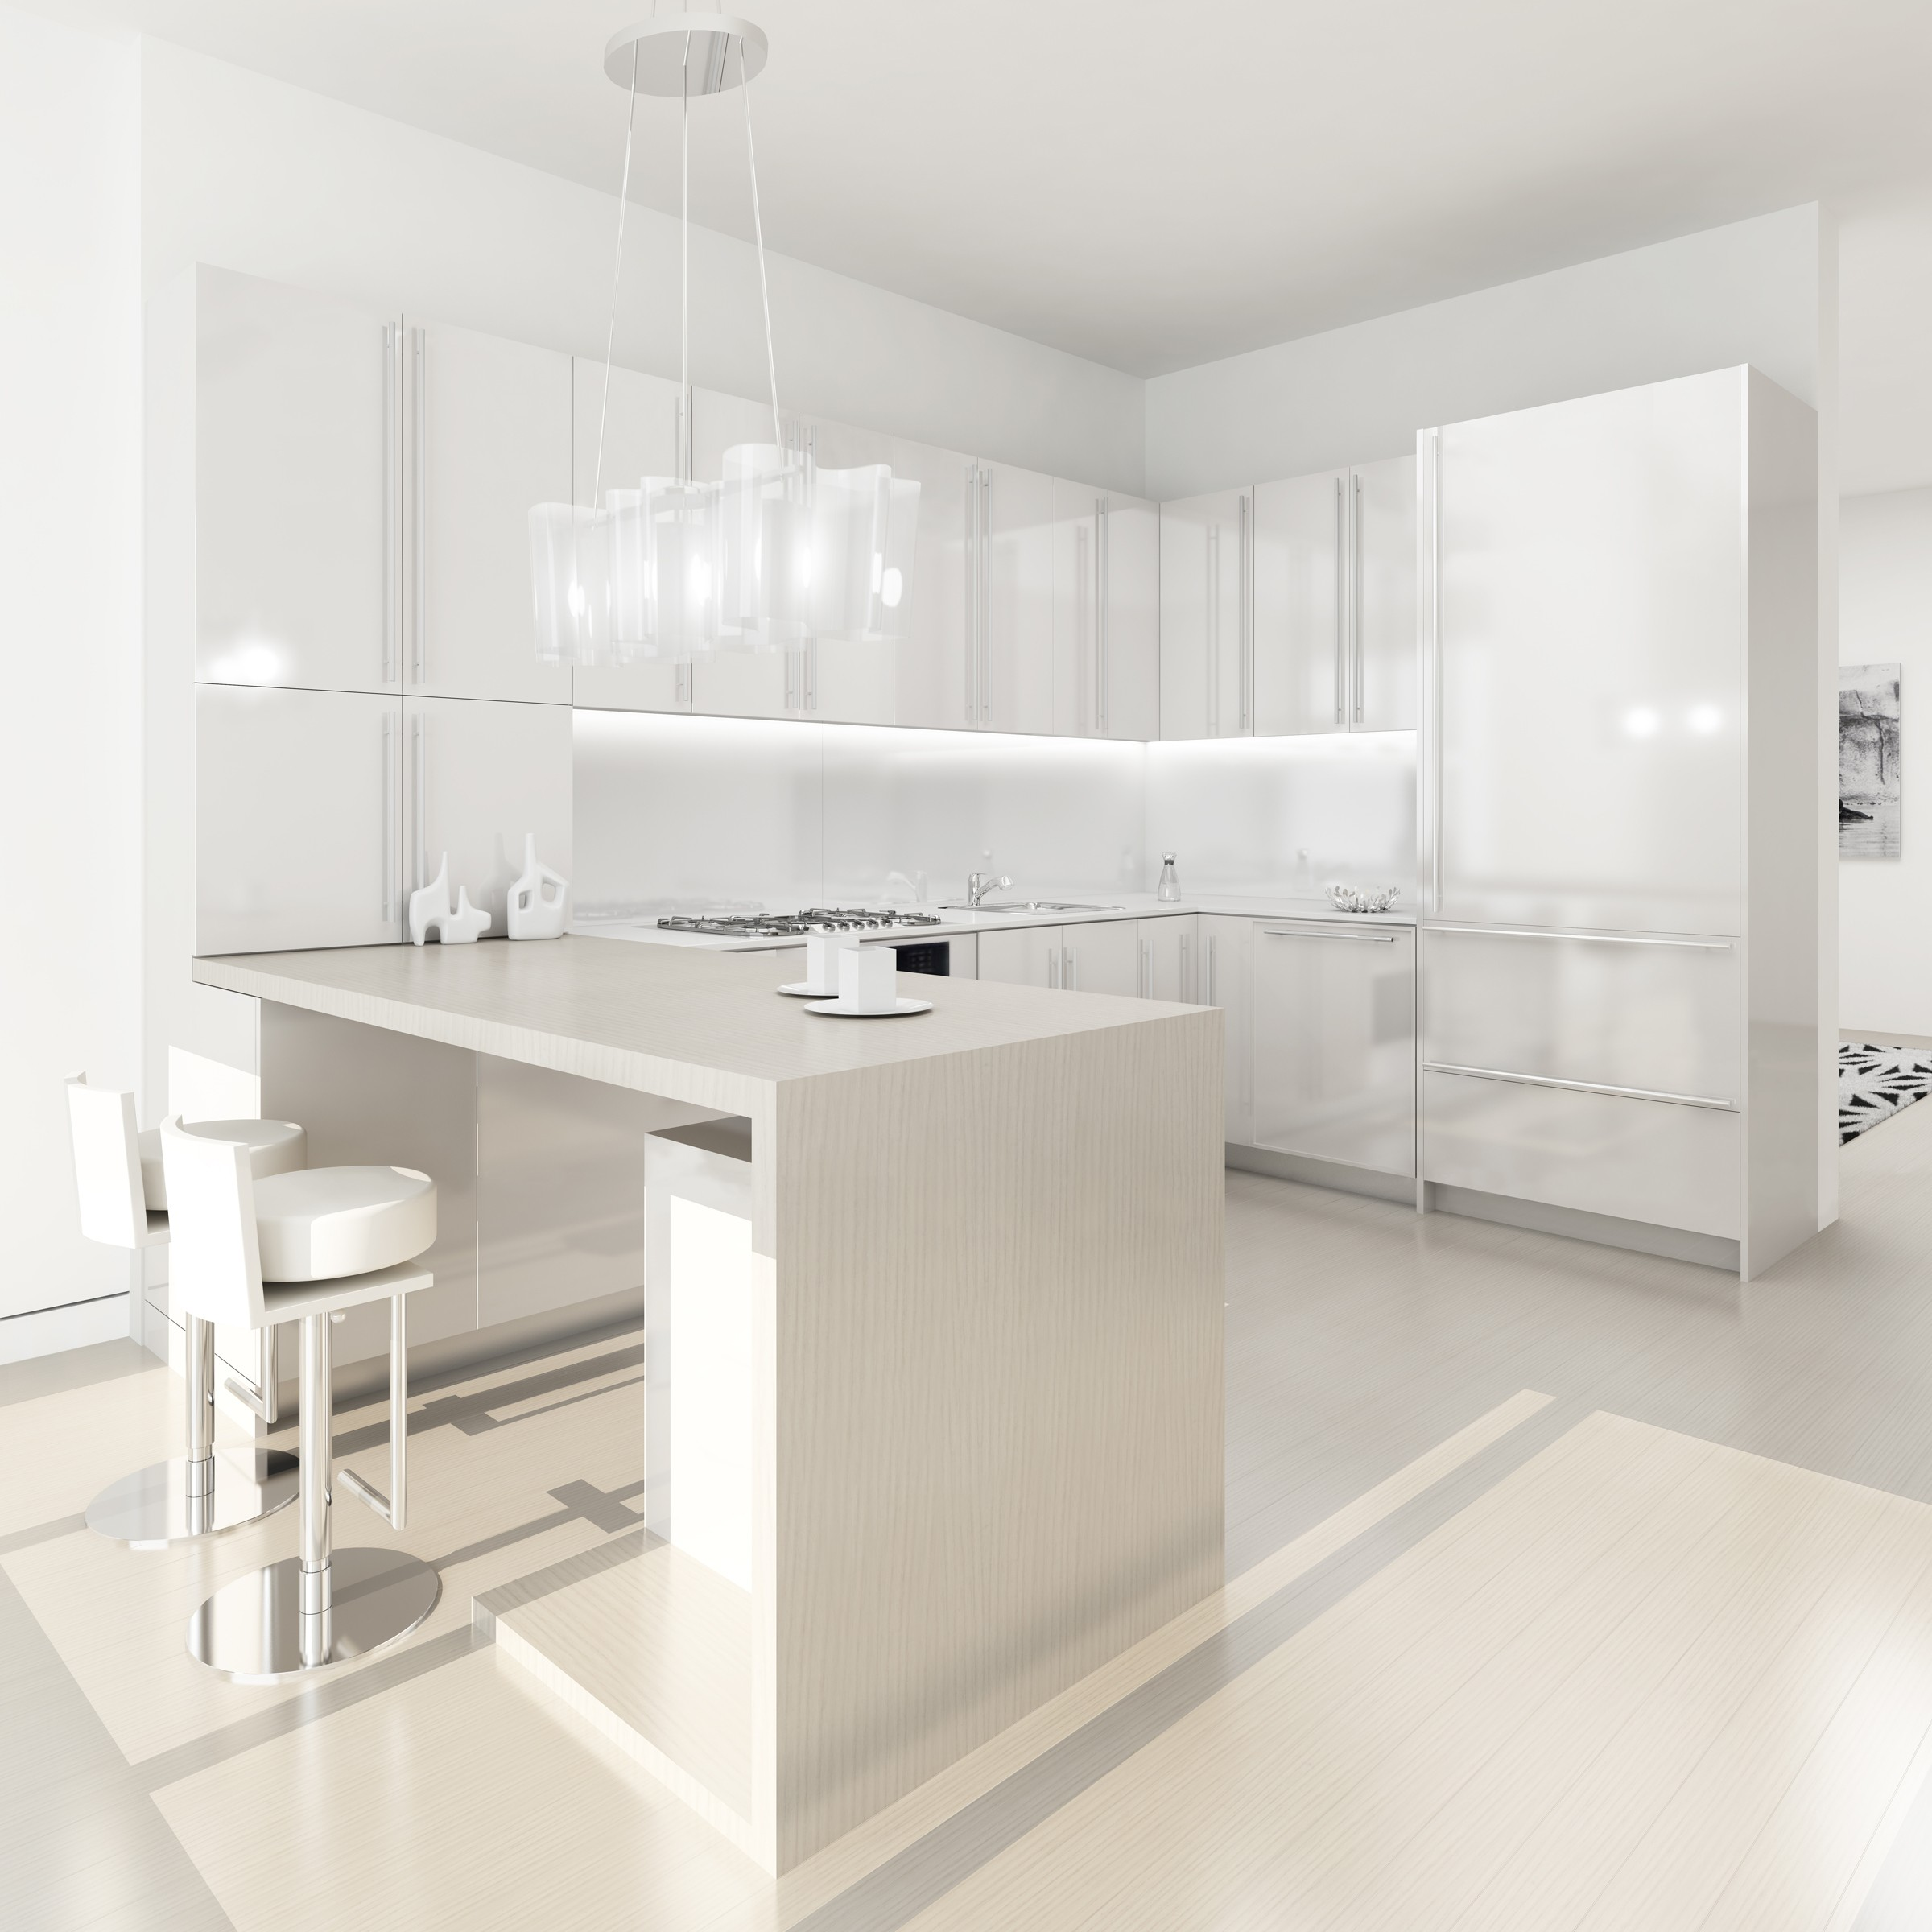 White kitchens - Modern white kitchen design ideas ...